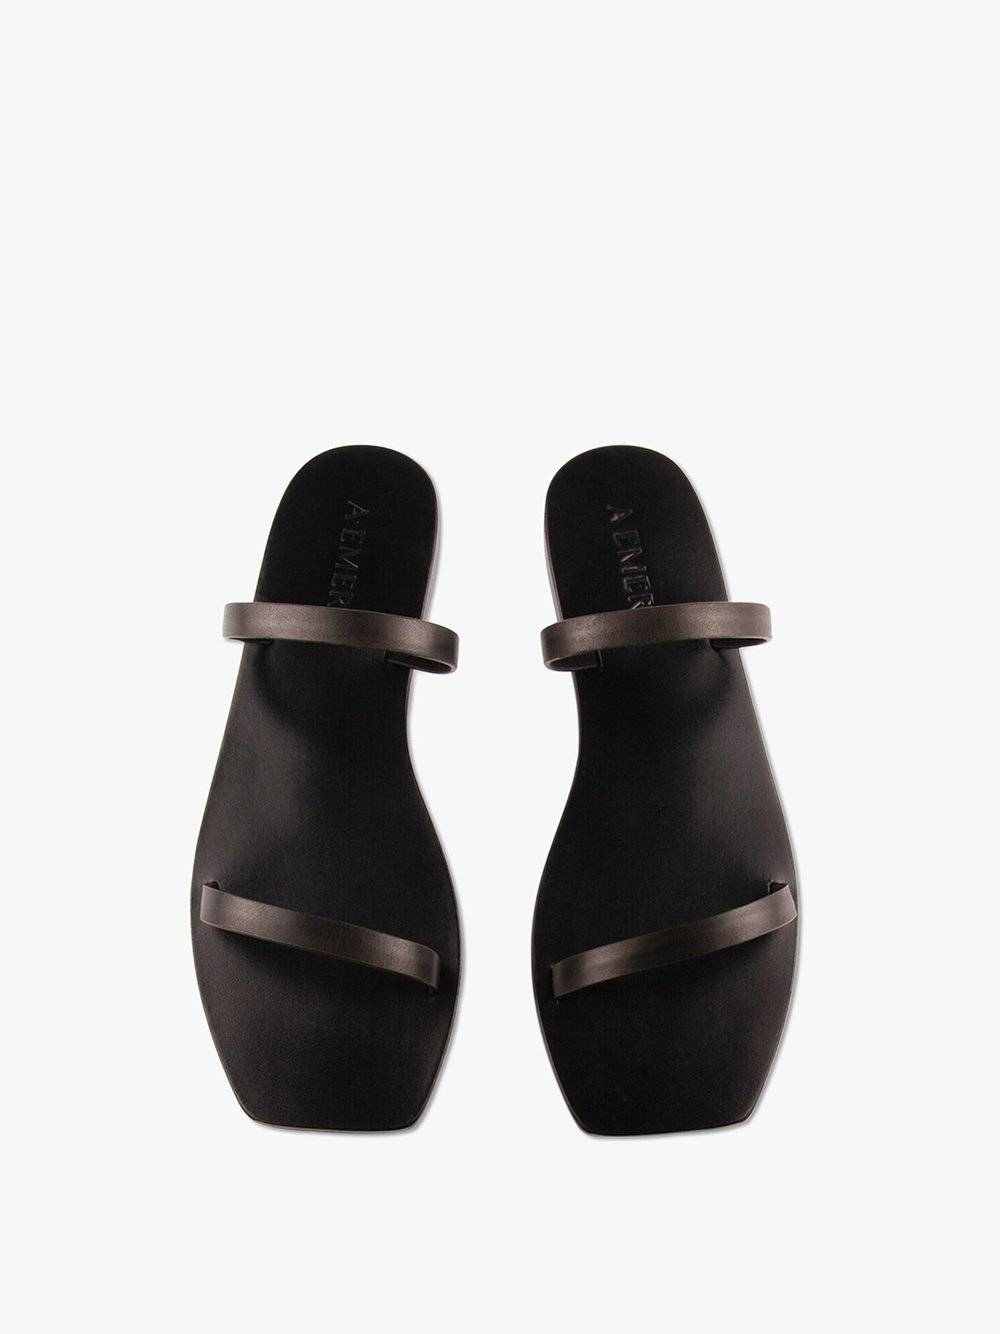 A.Emery Women's Lola Double Strap Leather Slide Shoes in Black size 39.0I